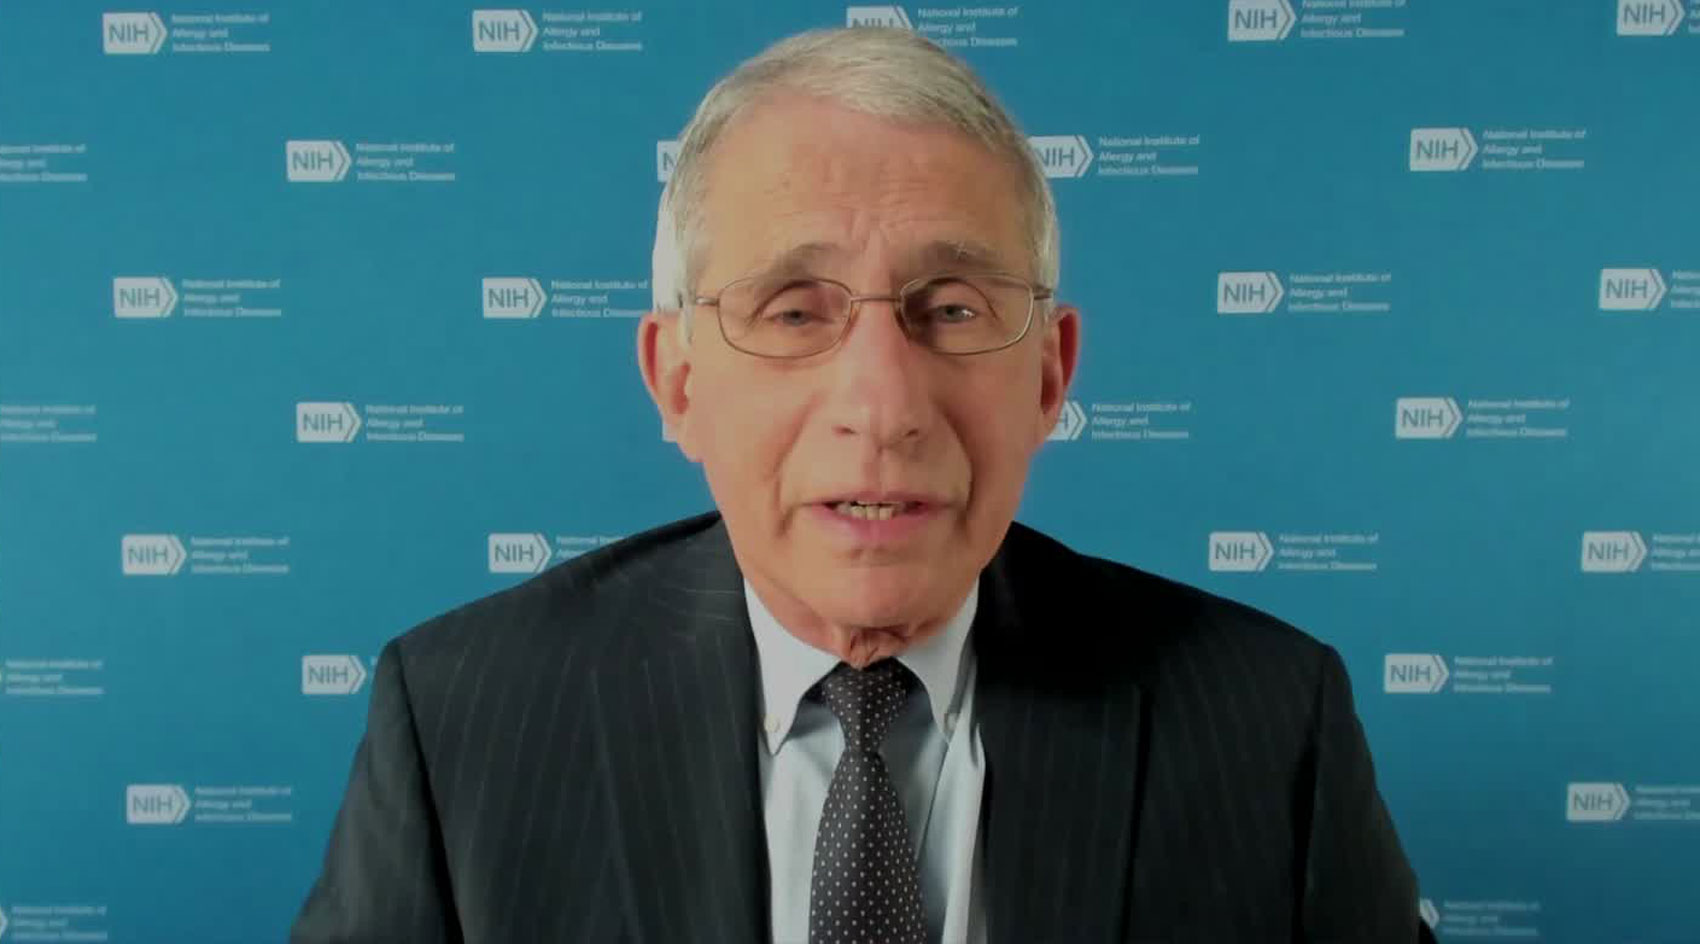 Dr. Anthony Fauci on December 7.